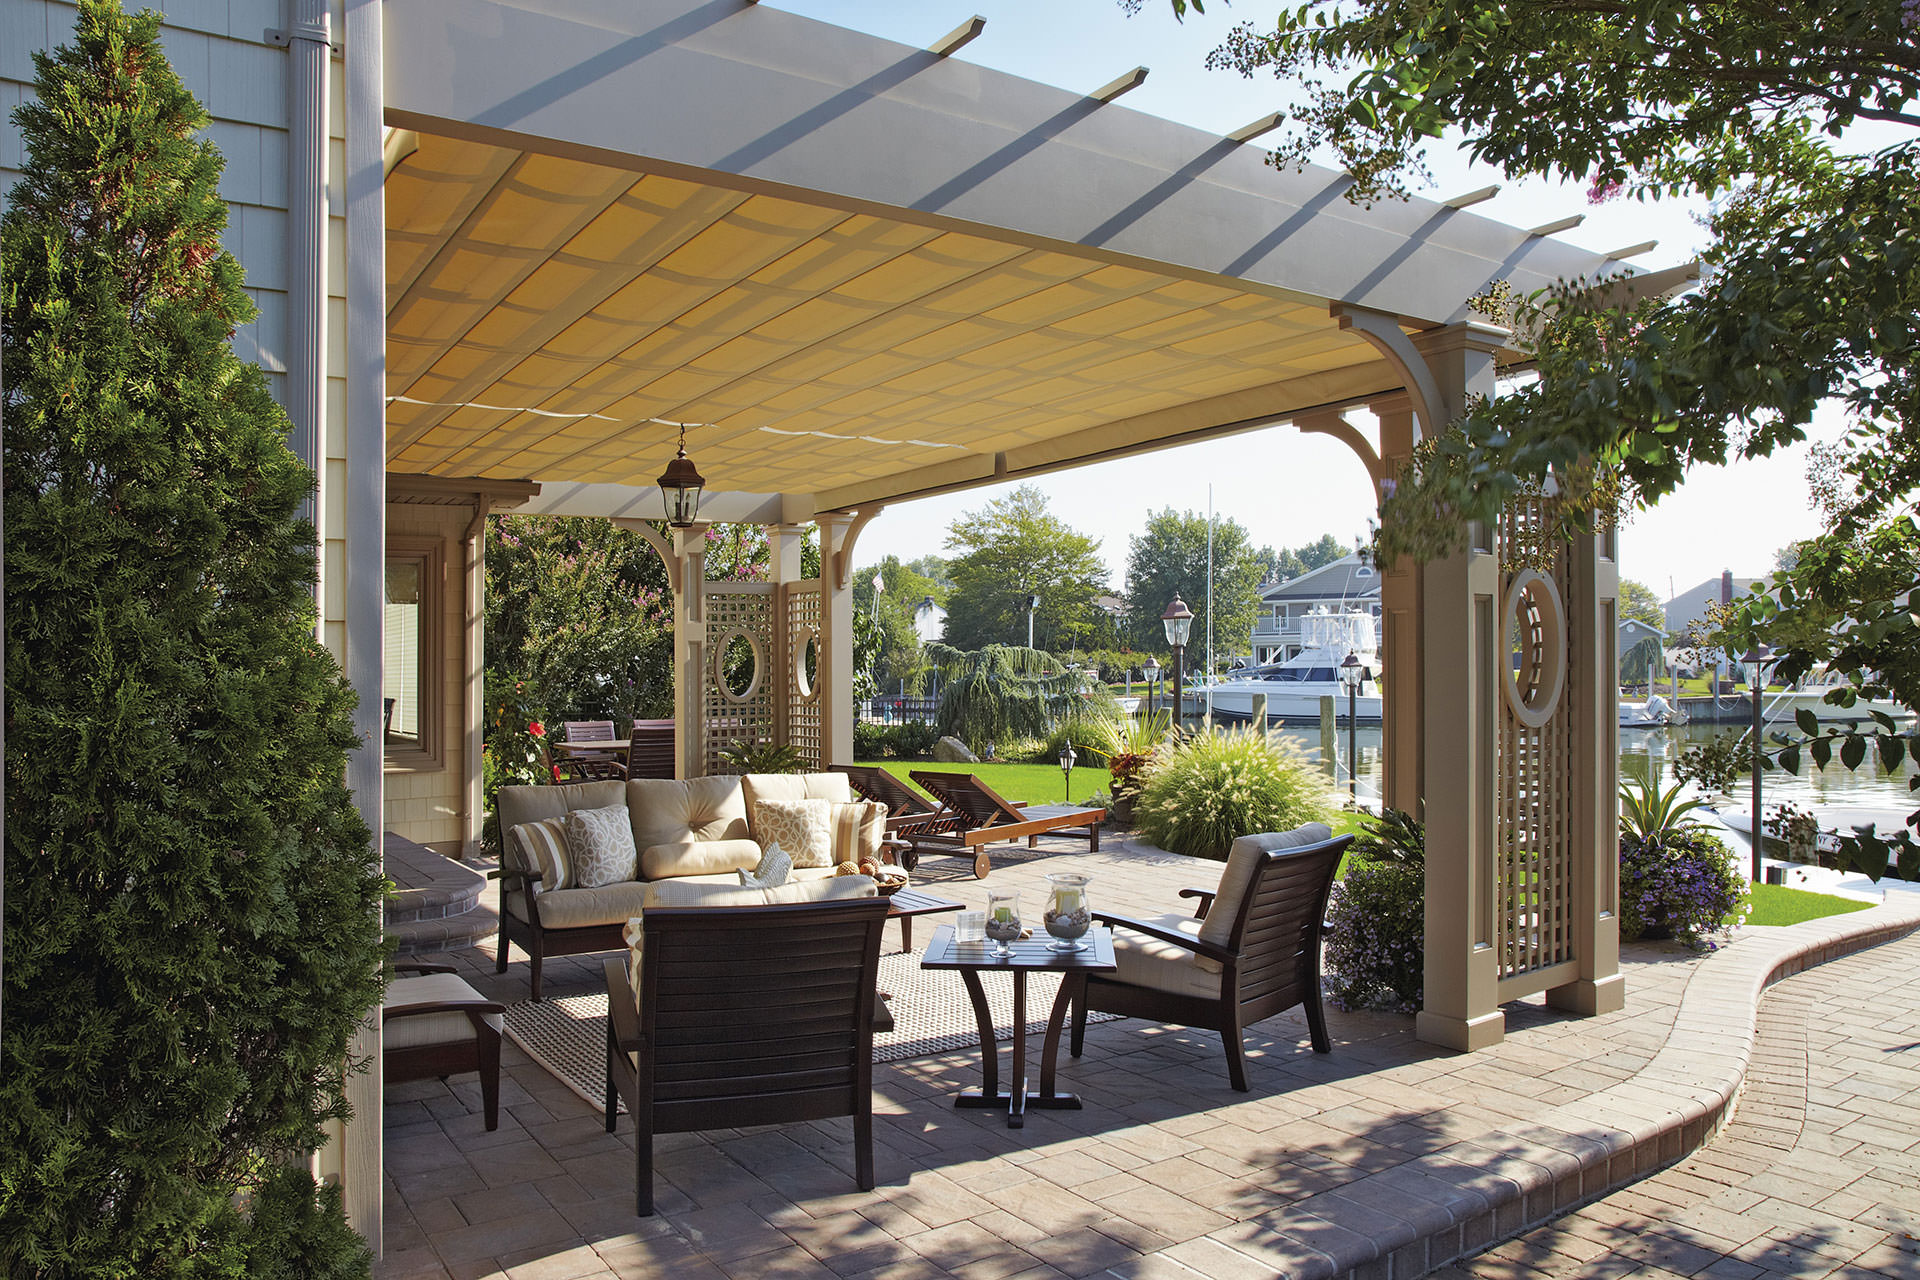 22 awesome pergolas with retractable awnings pixelmari com